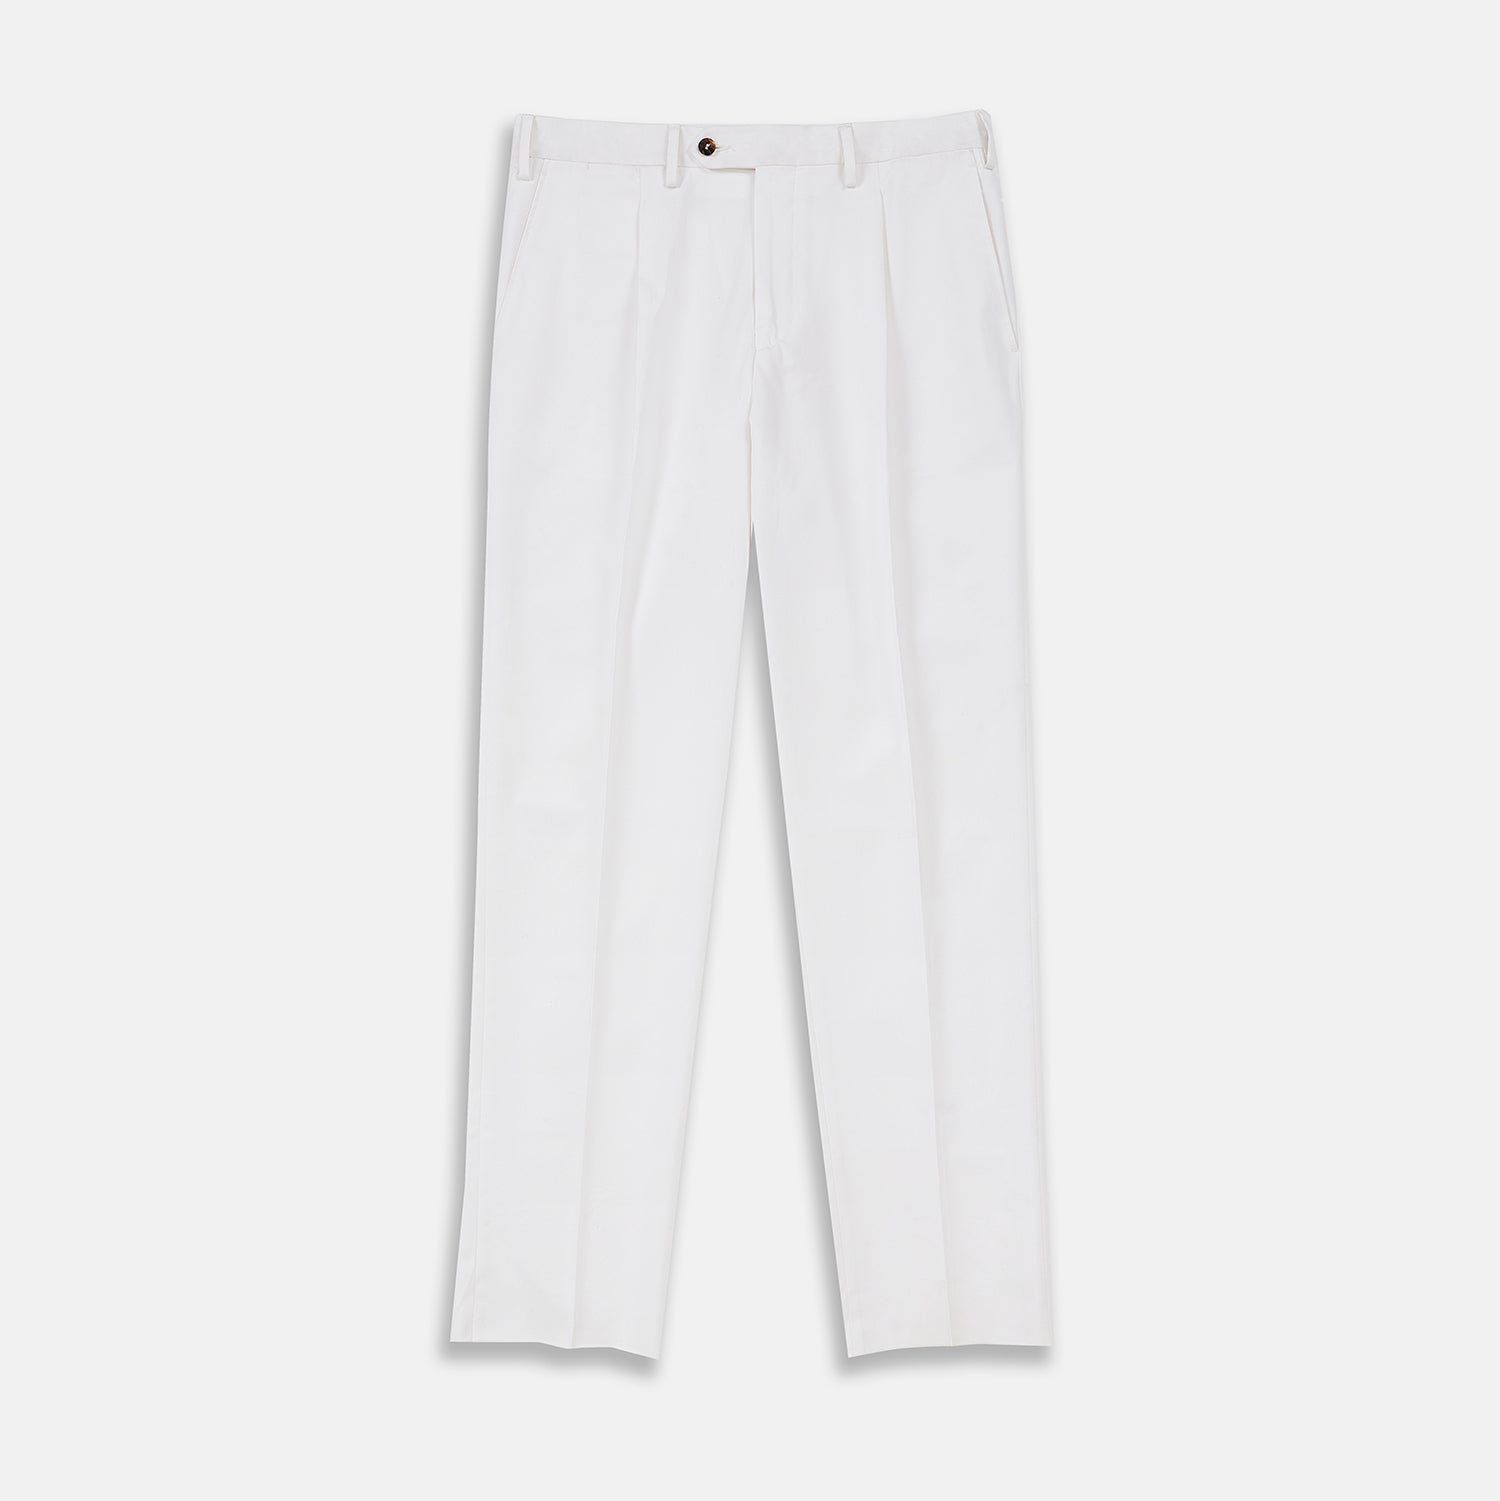 White Cotton Pleated Trousers - 38 from Turnbull & Asser